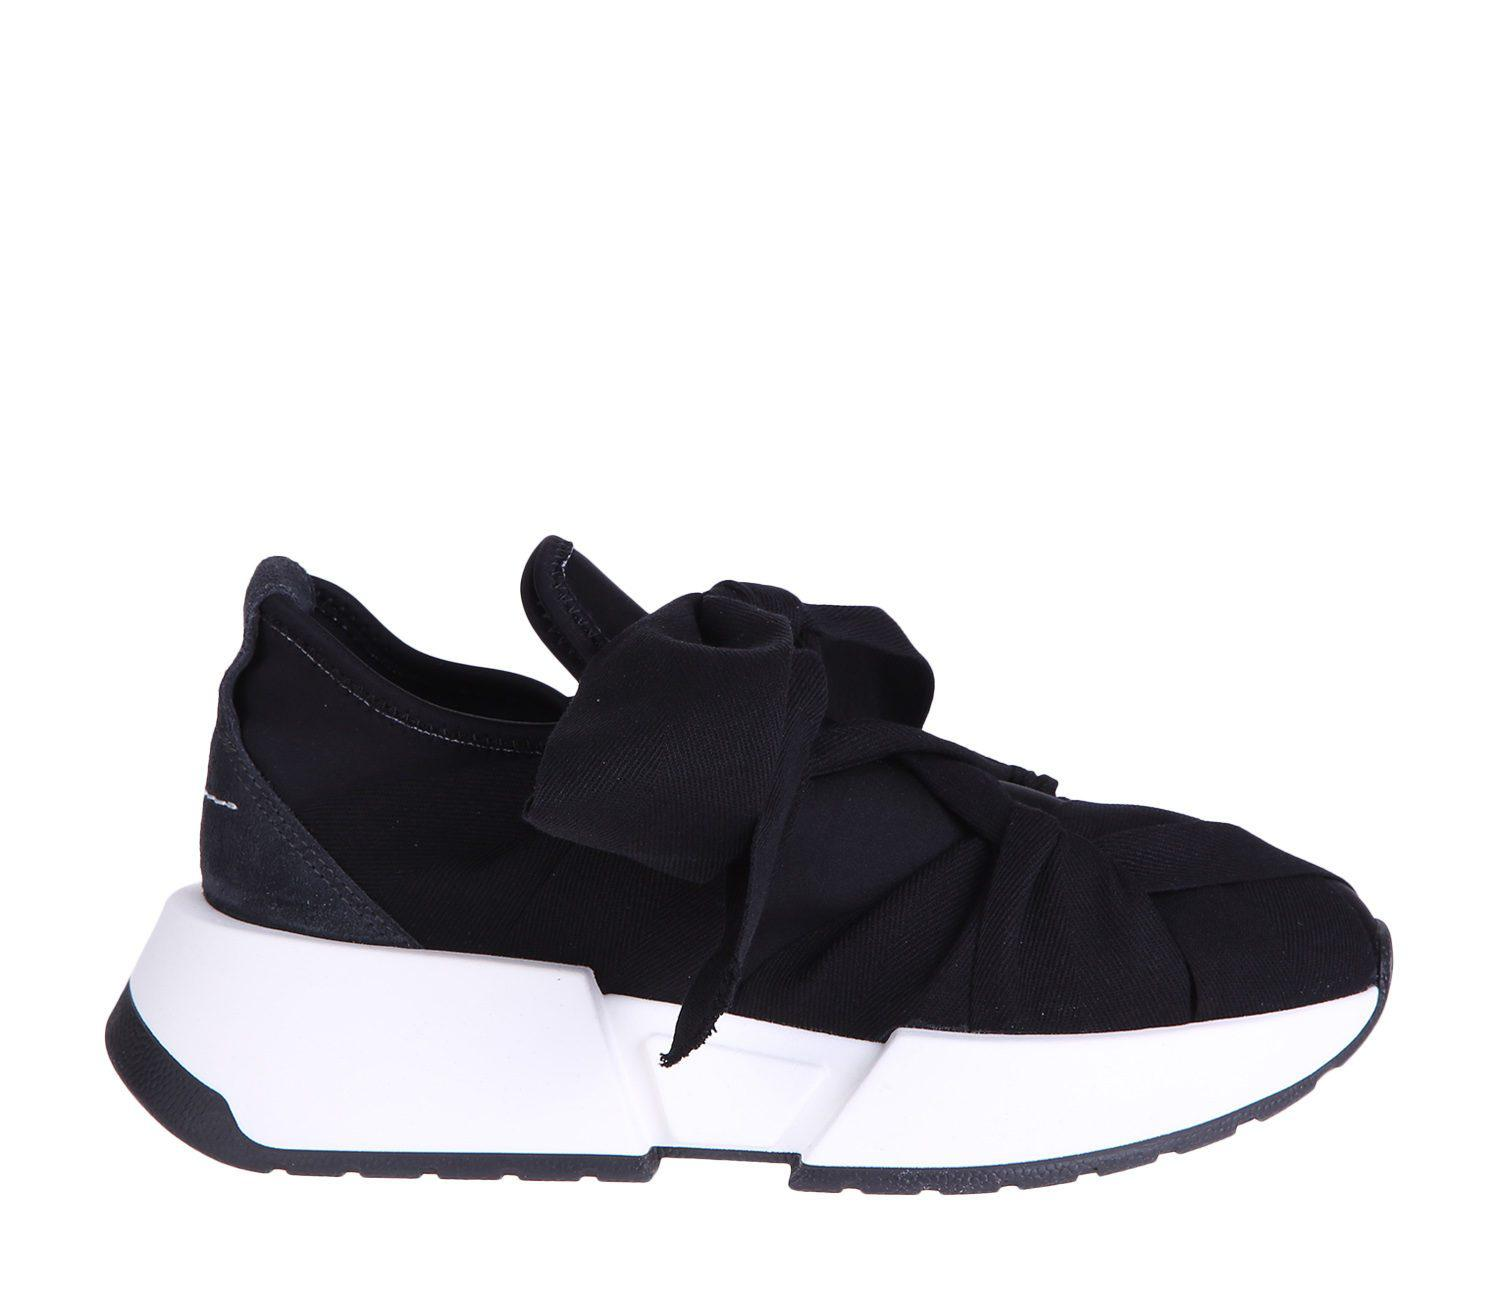 Mm6 By Crisscrossing Sneakers Blue Margiela In Ribbon Maison Martin edBoCx